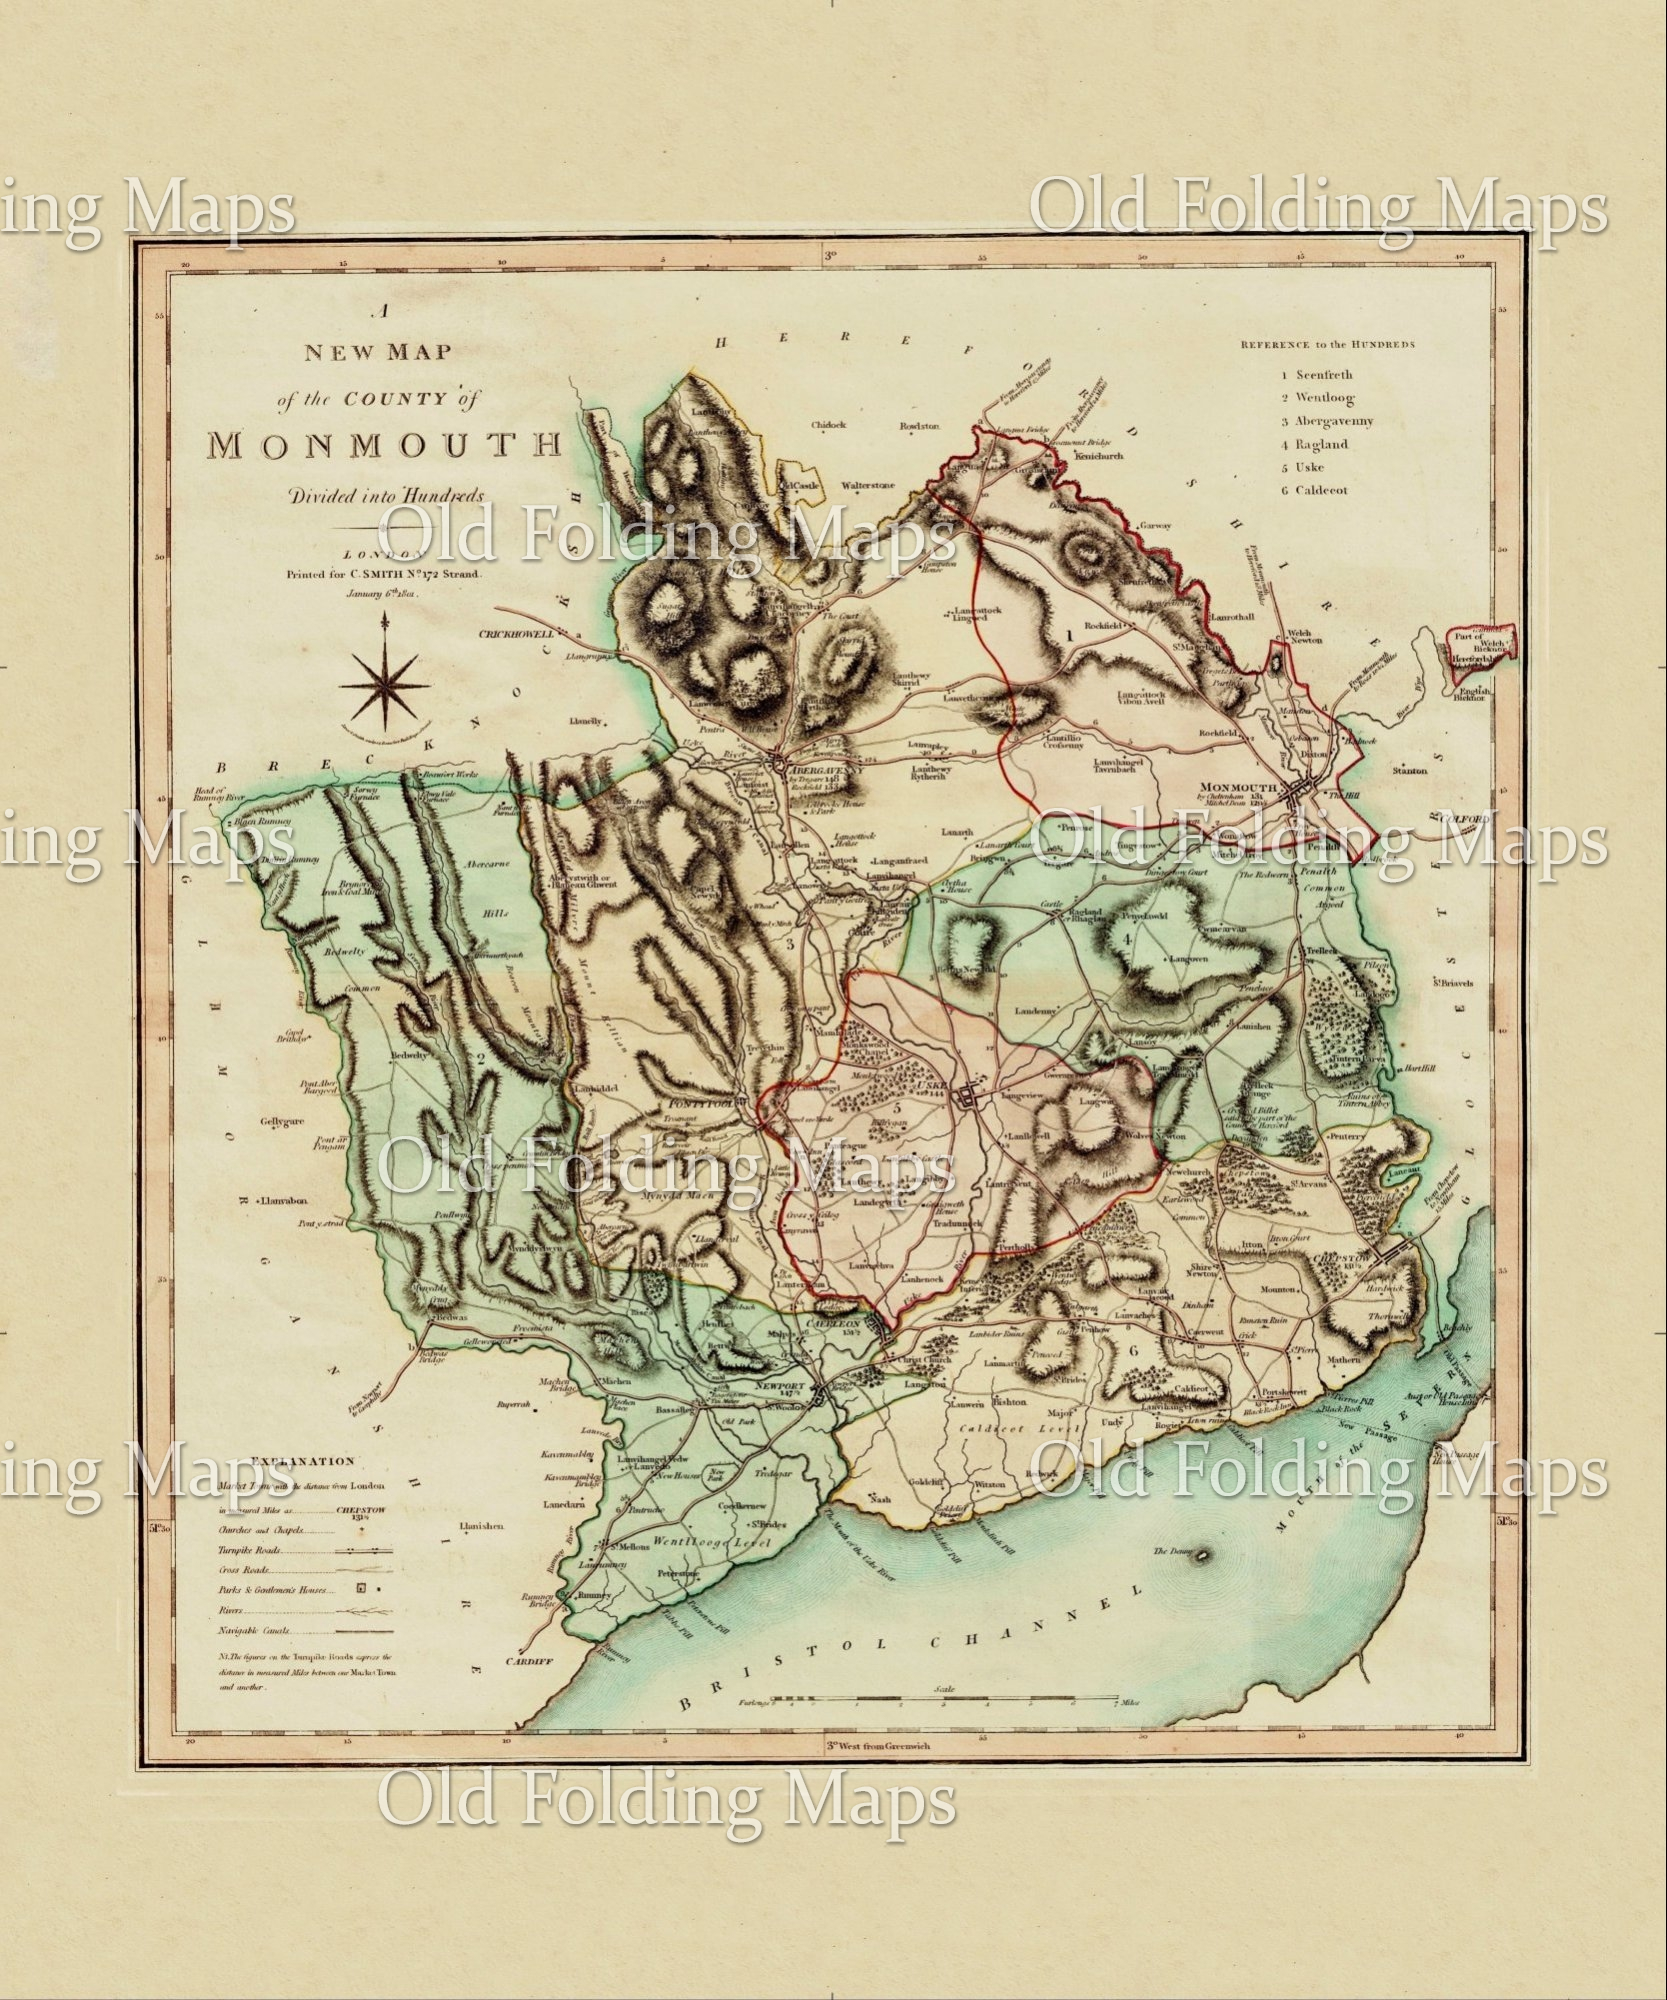 Antique County Map of Monmouthshire circa 1800